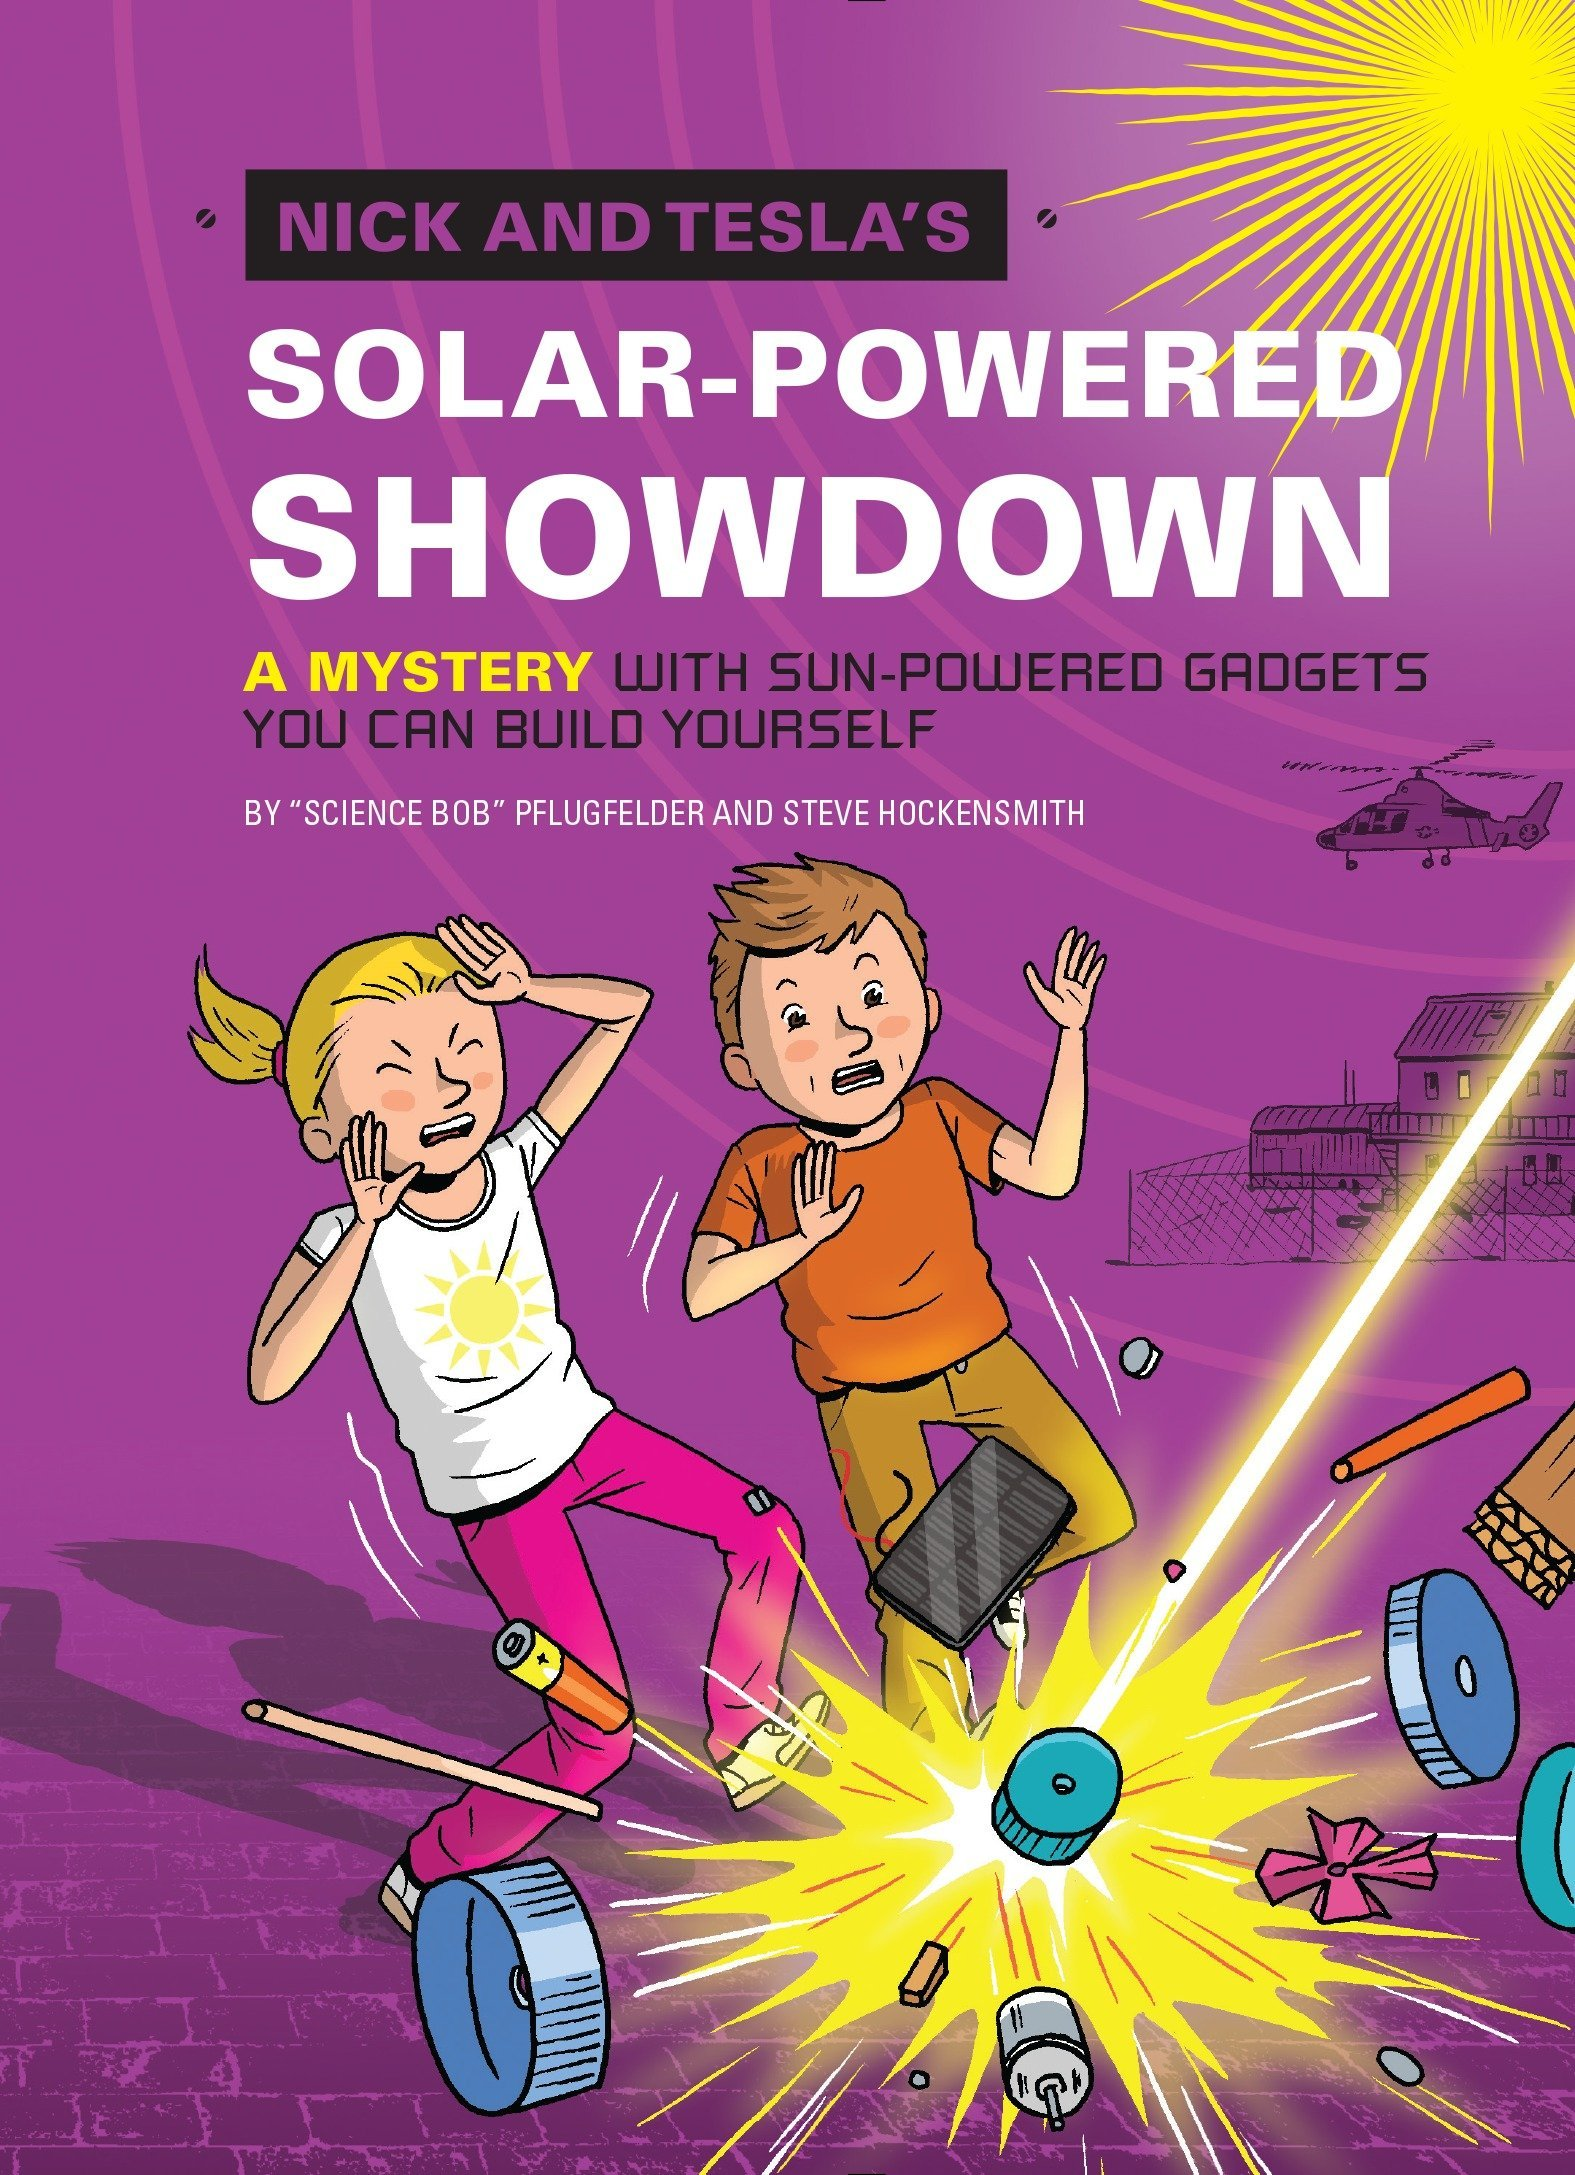 Nick and teslas solar powered showdown a mystery with sun powered nick and teslas solar powered showdown a mystery with sun powered gadgets you can build yourself bob pflugfelder steve hockensmith 9781594748660 solutioingenieria Choice Image